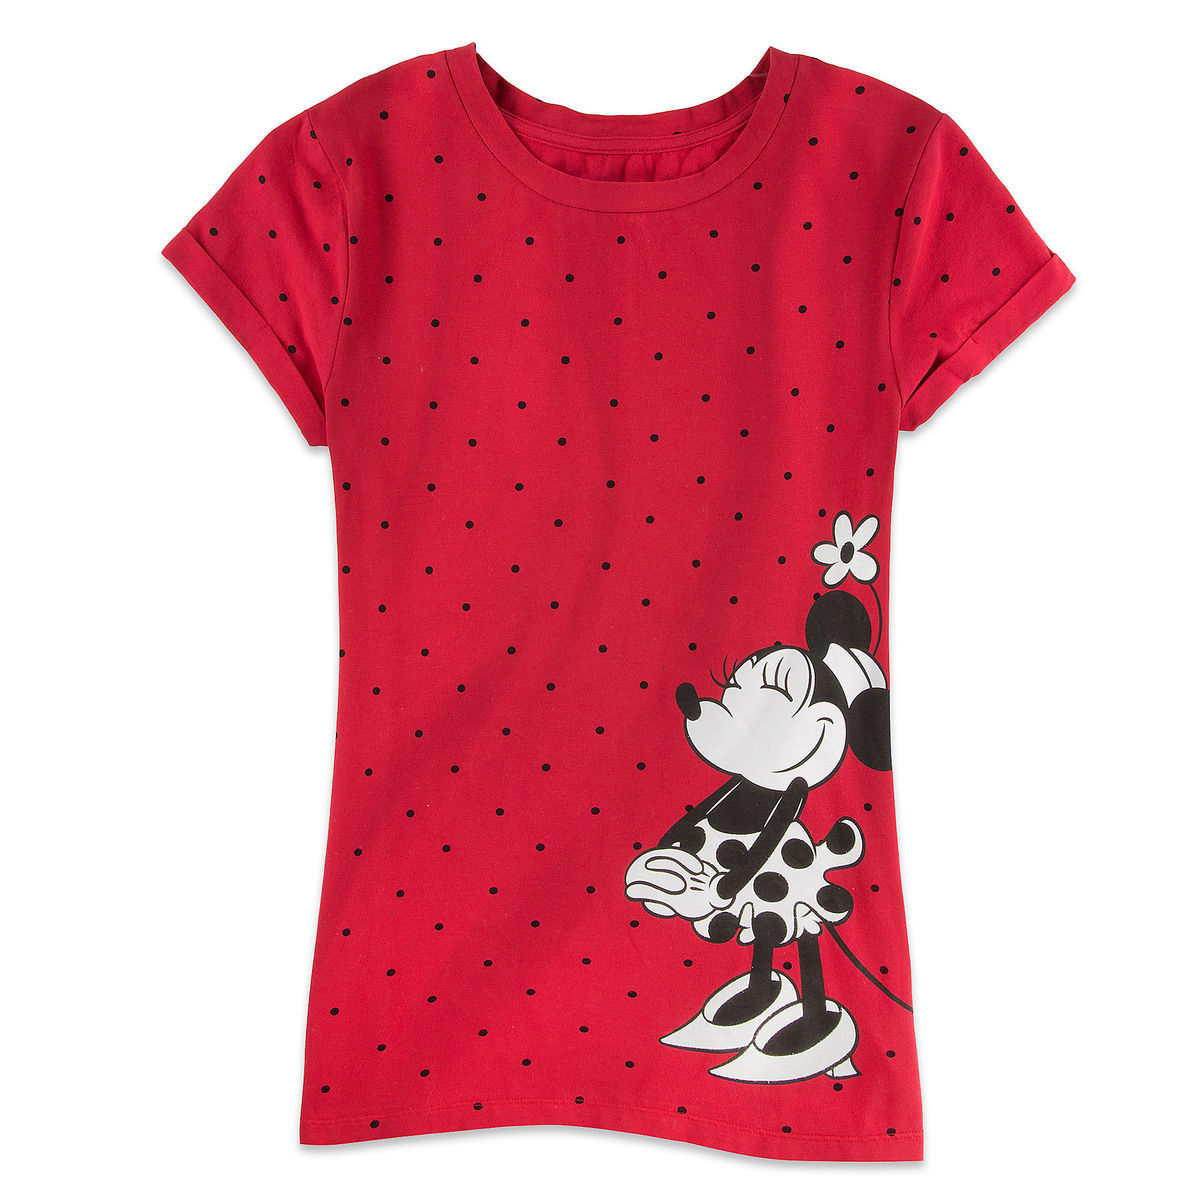 Minnie Mouse Polka Dot Tee For Women Shopdisney